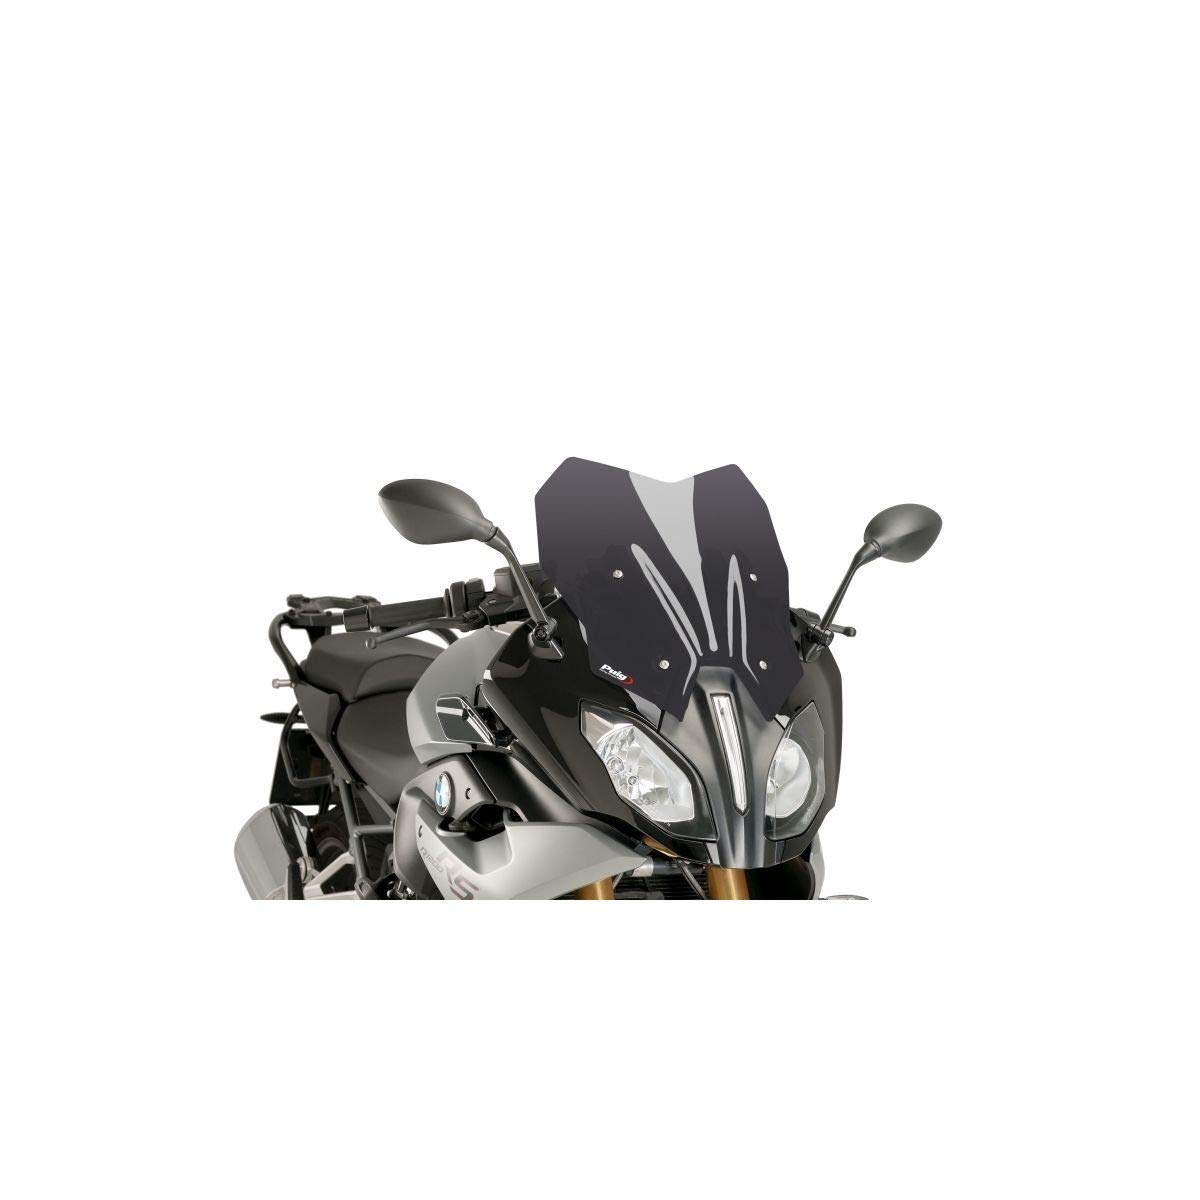 PUIG PUIG 7616F//72 Windschild racing double bubble FARBE DUNKEL RAUCH 7616F//72